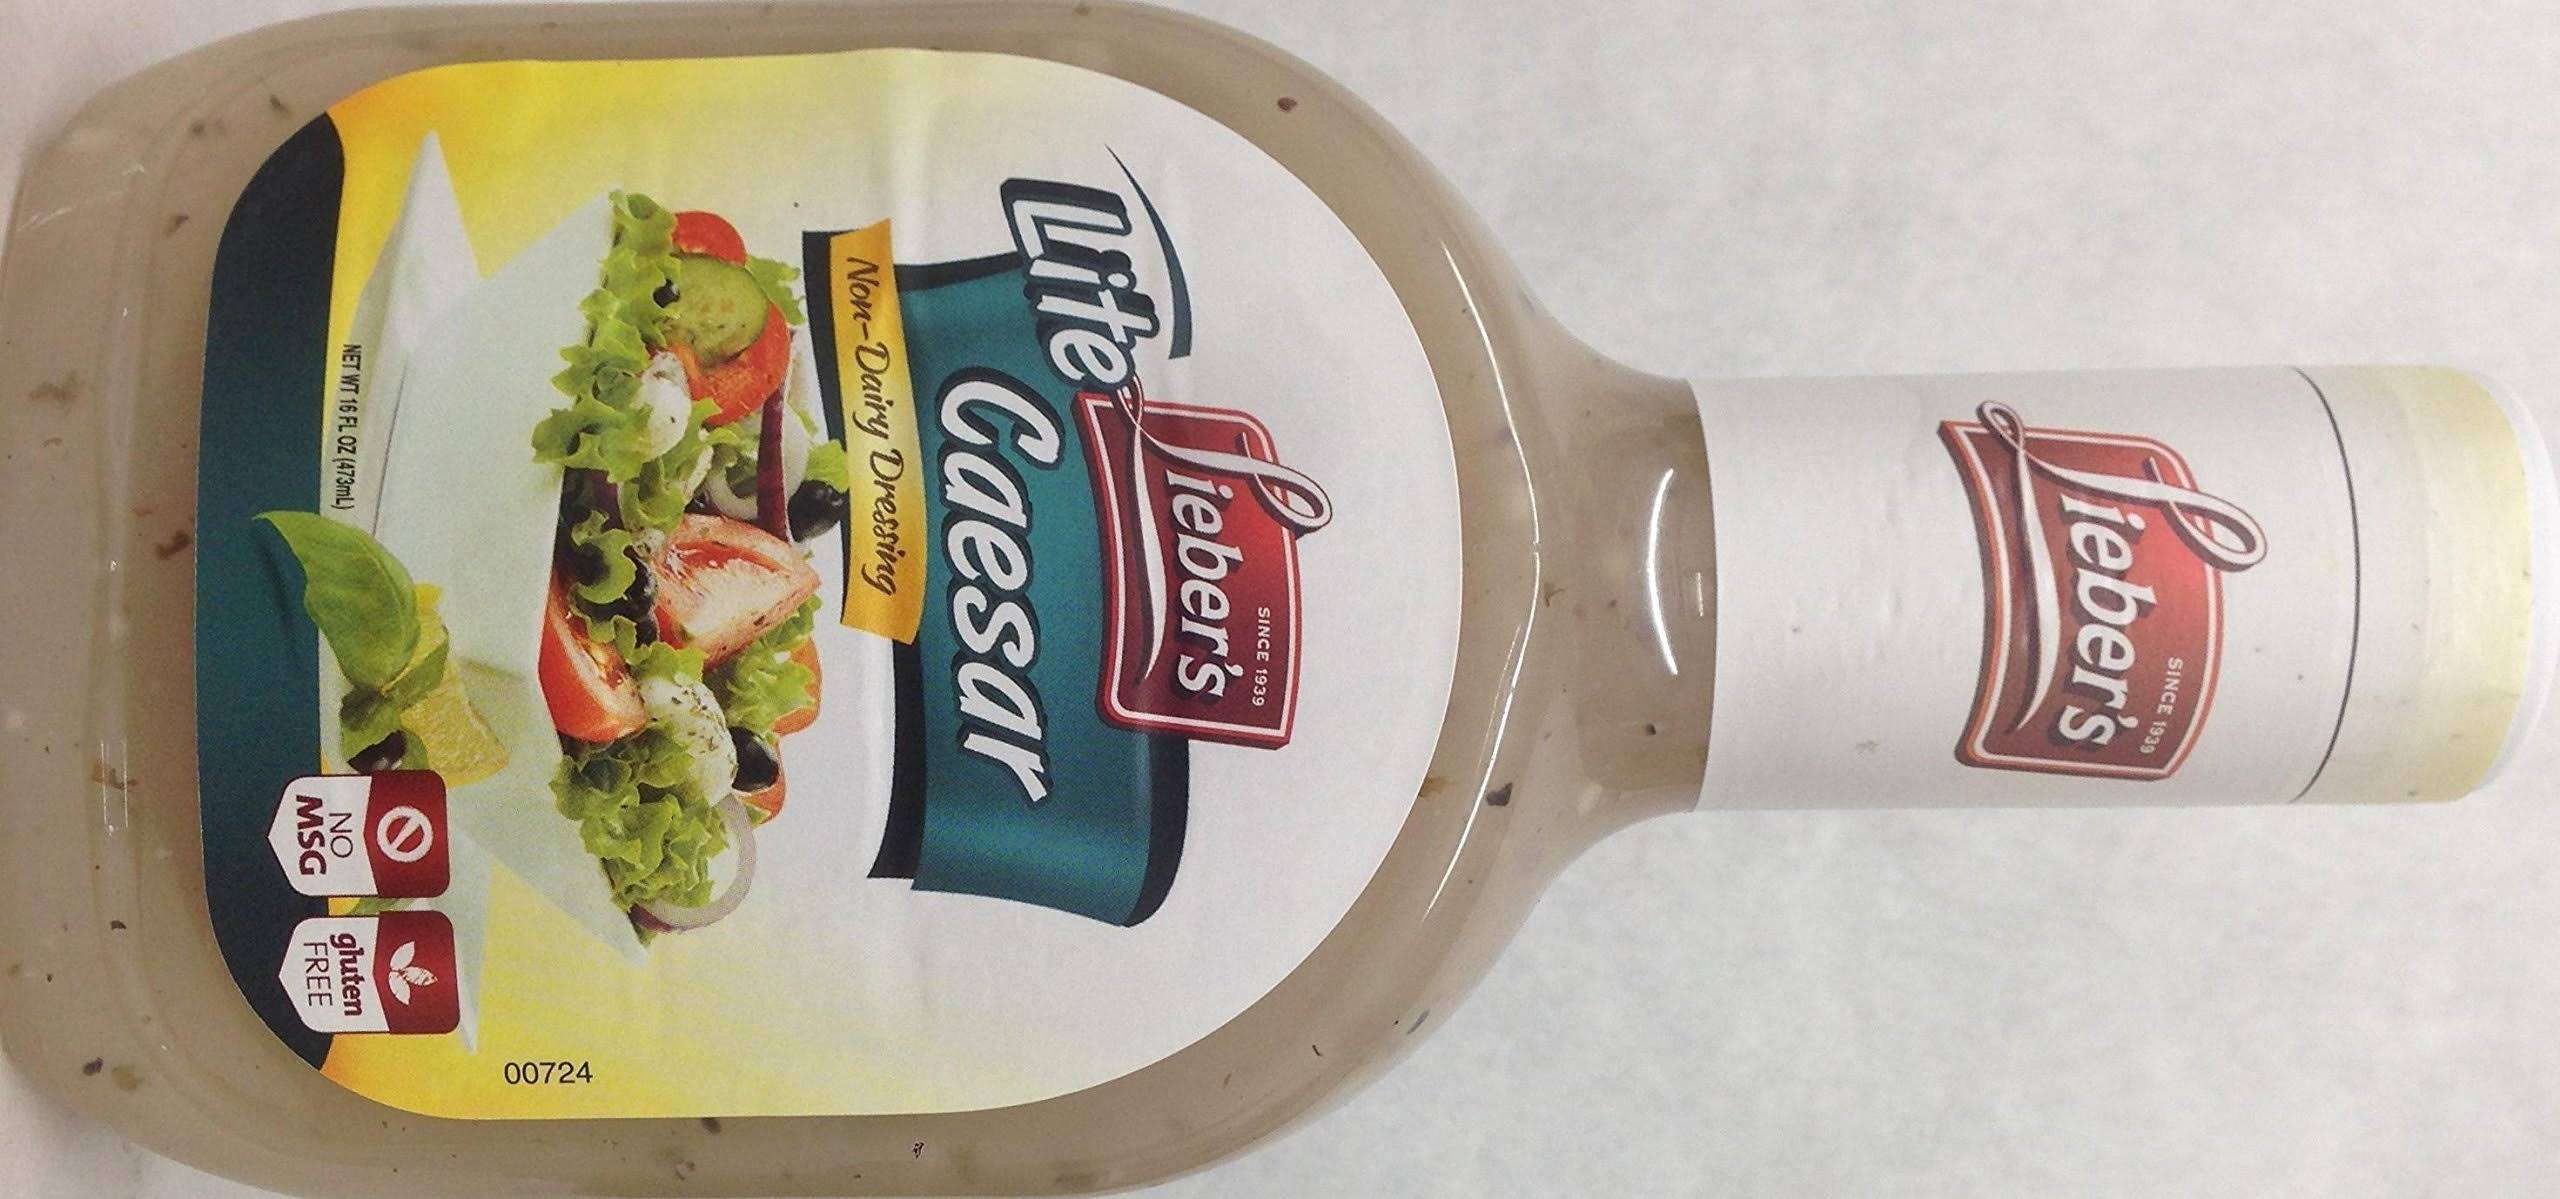 Lieber's Salad Dressing, Lite Caesar - 16 fl oz bottle